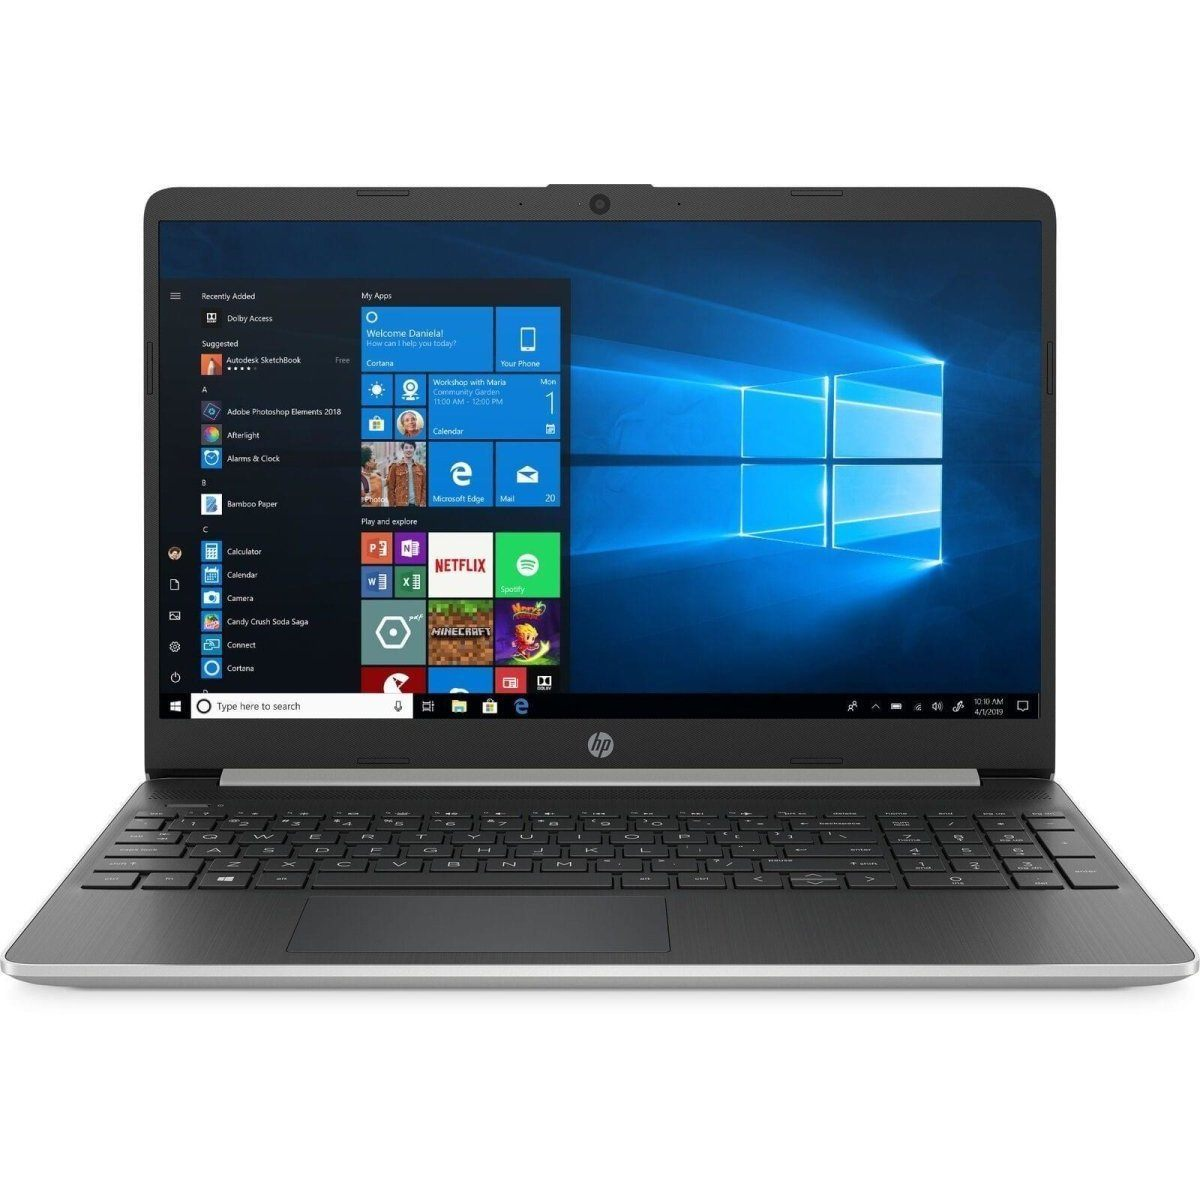 HP Laptop 15.6 inch HD Display Intel Core i3 - Fix Or Cell Now Device Shop